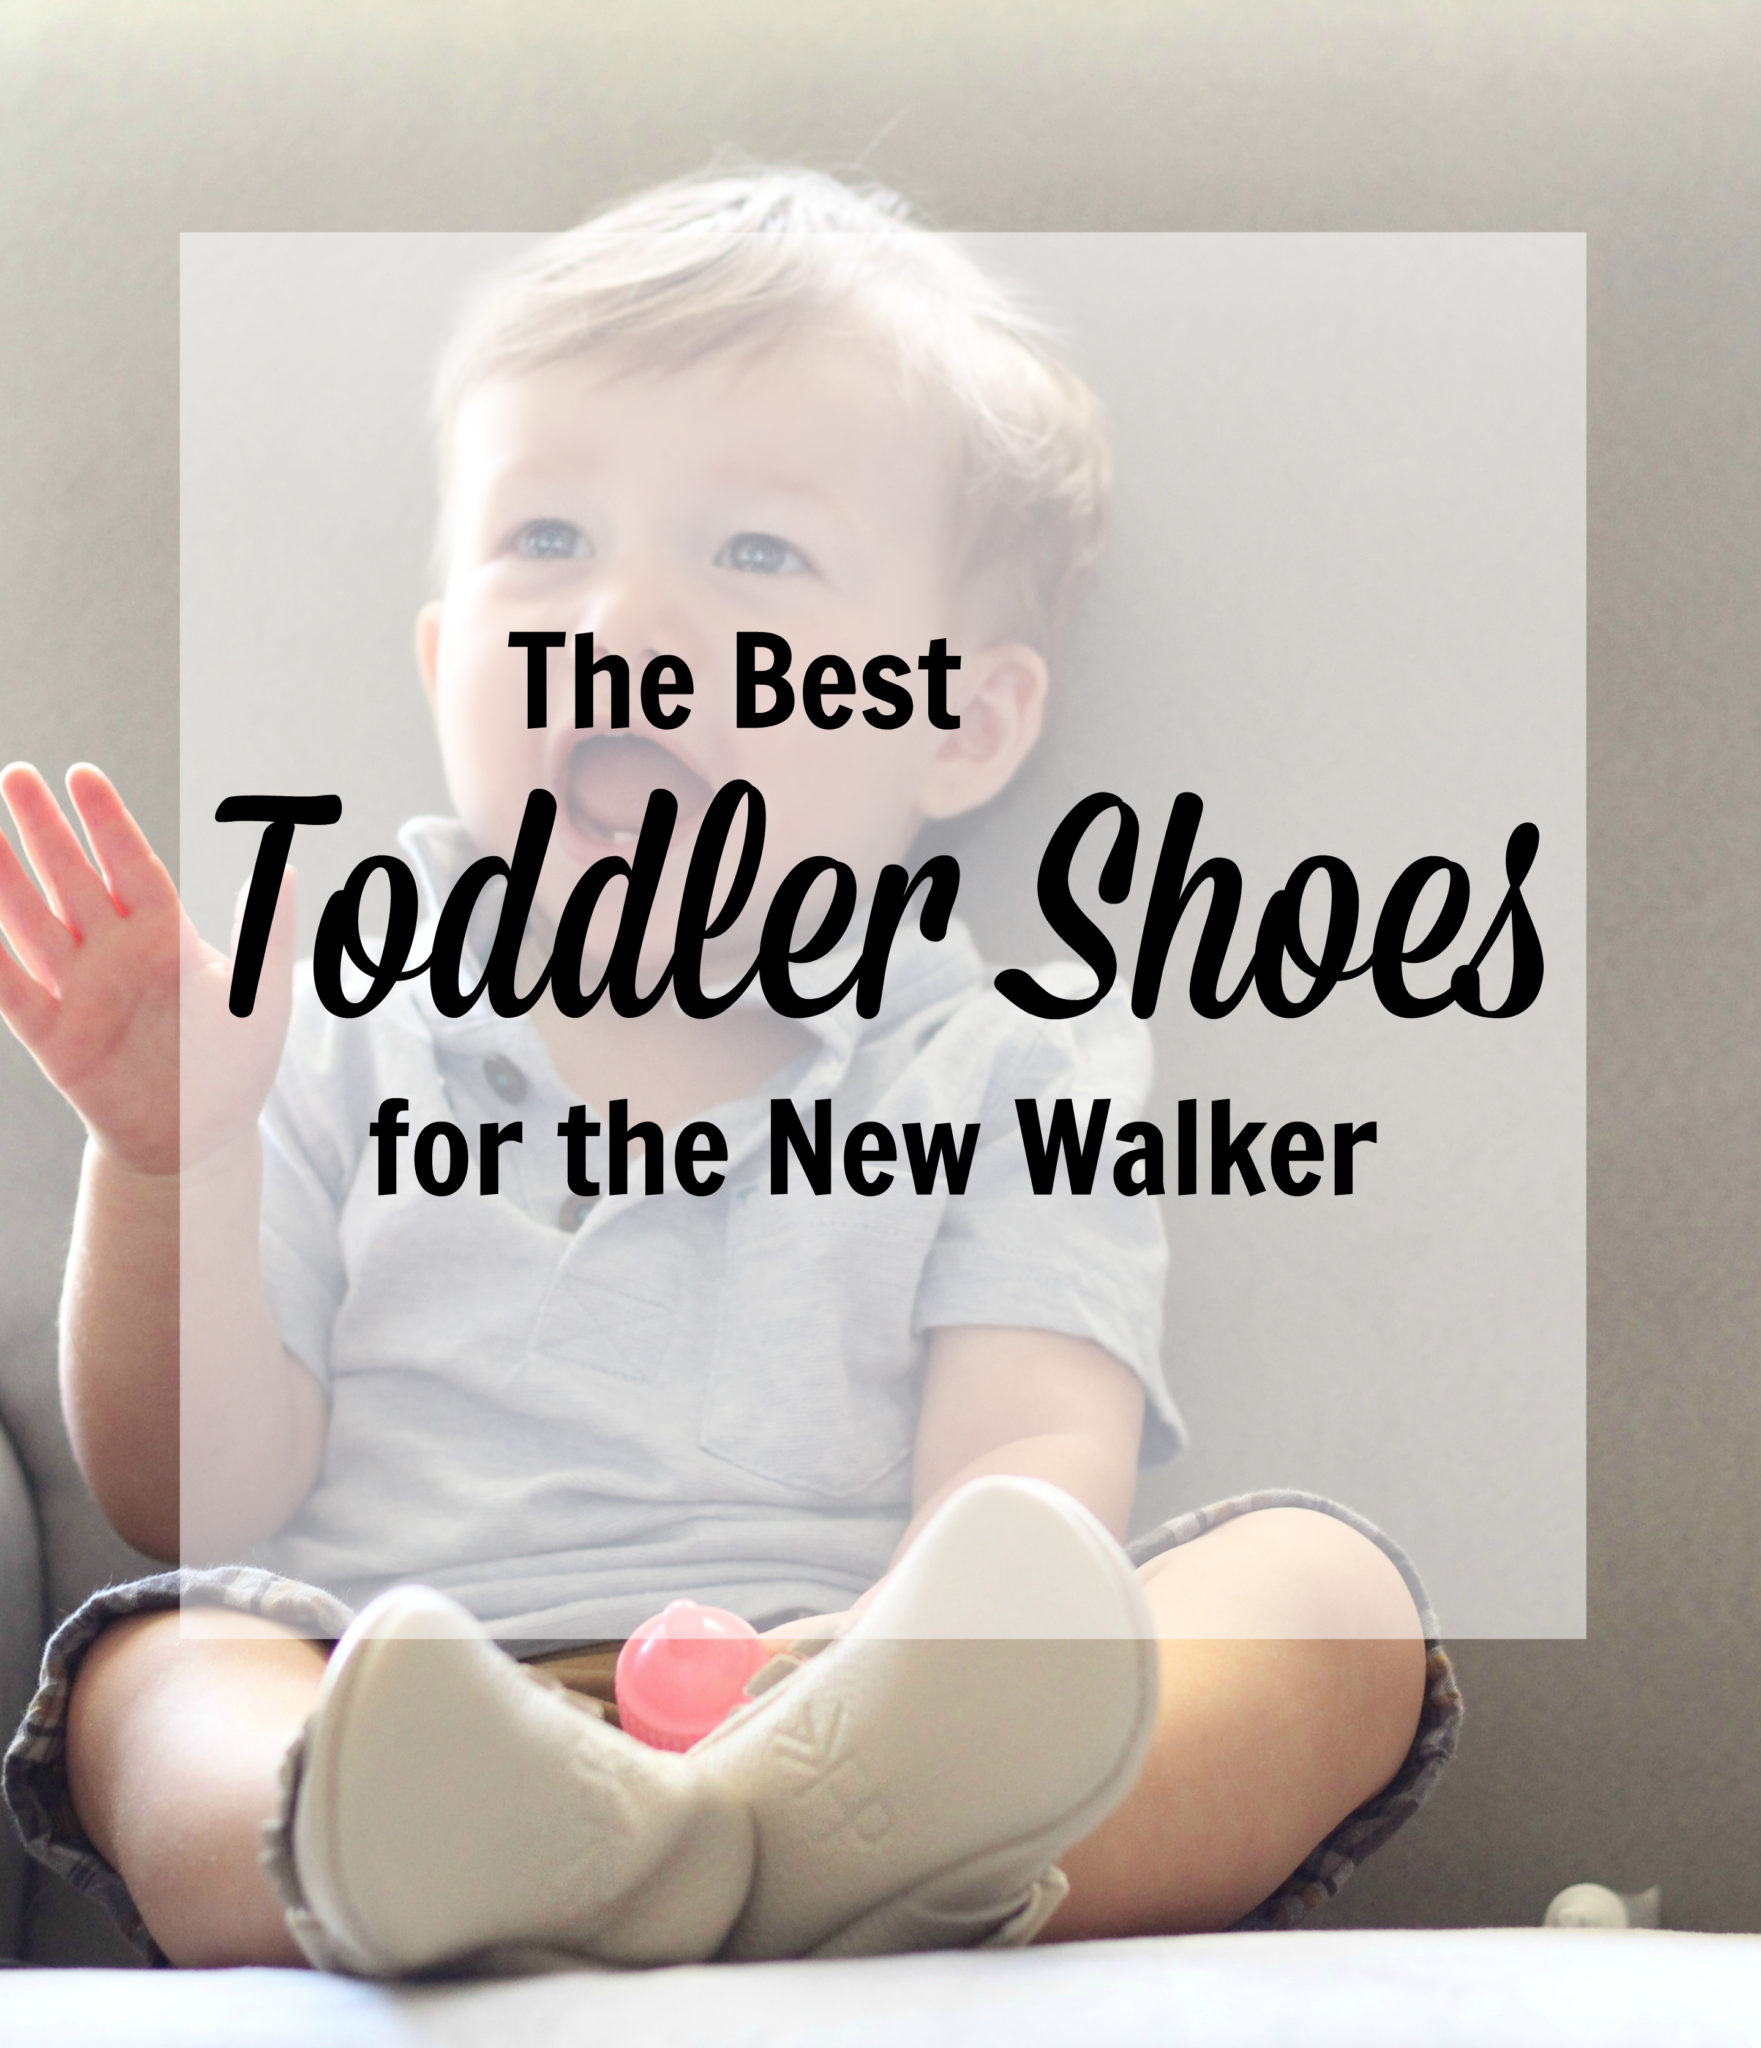 The Best Toddler Shoes for the New Walker, Freshly Picked Crib Moccasins for Toddlers, shoes for fat baby feet, baby shoes that won't fall off